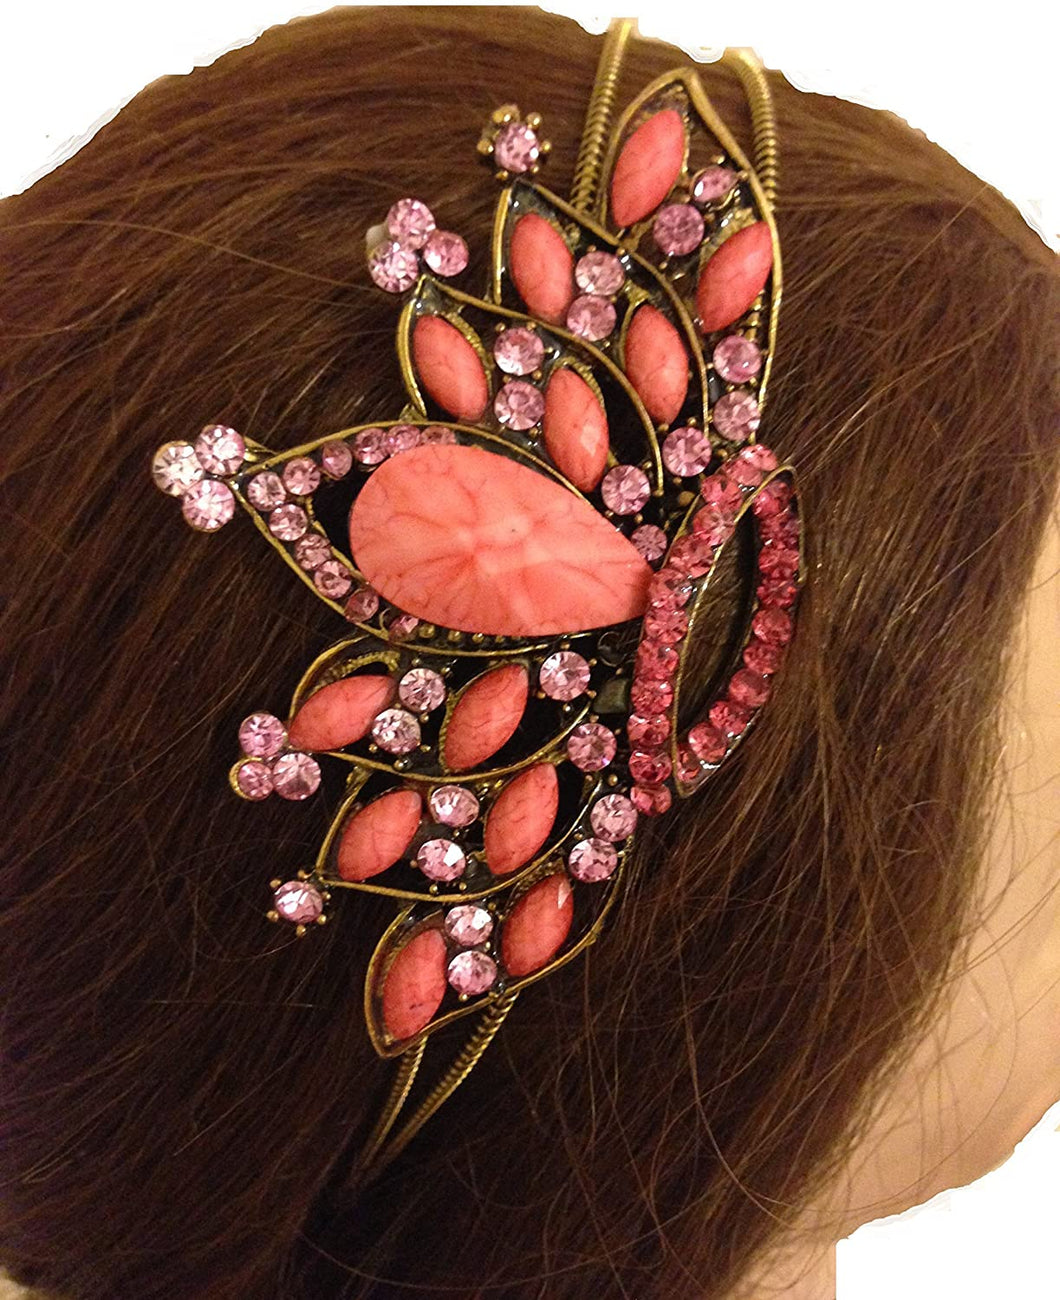 Pink/peachy crown design aliceband, headband with pretty stone